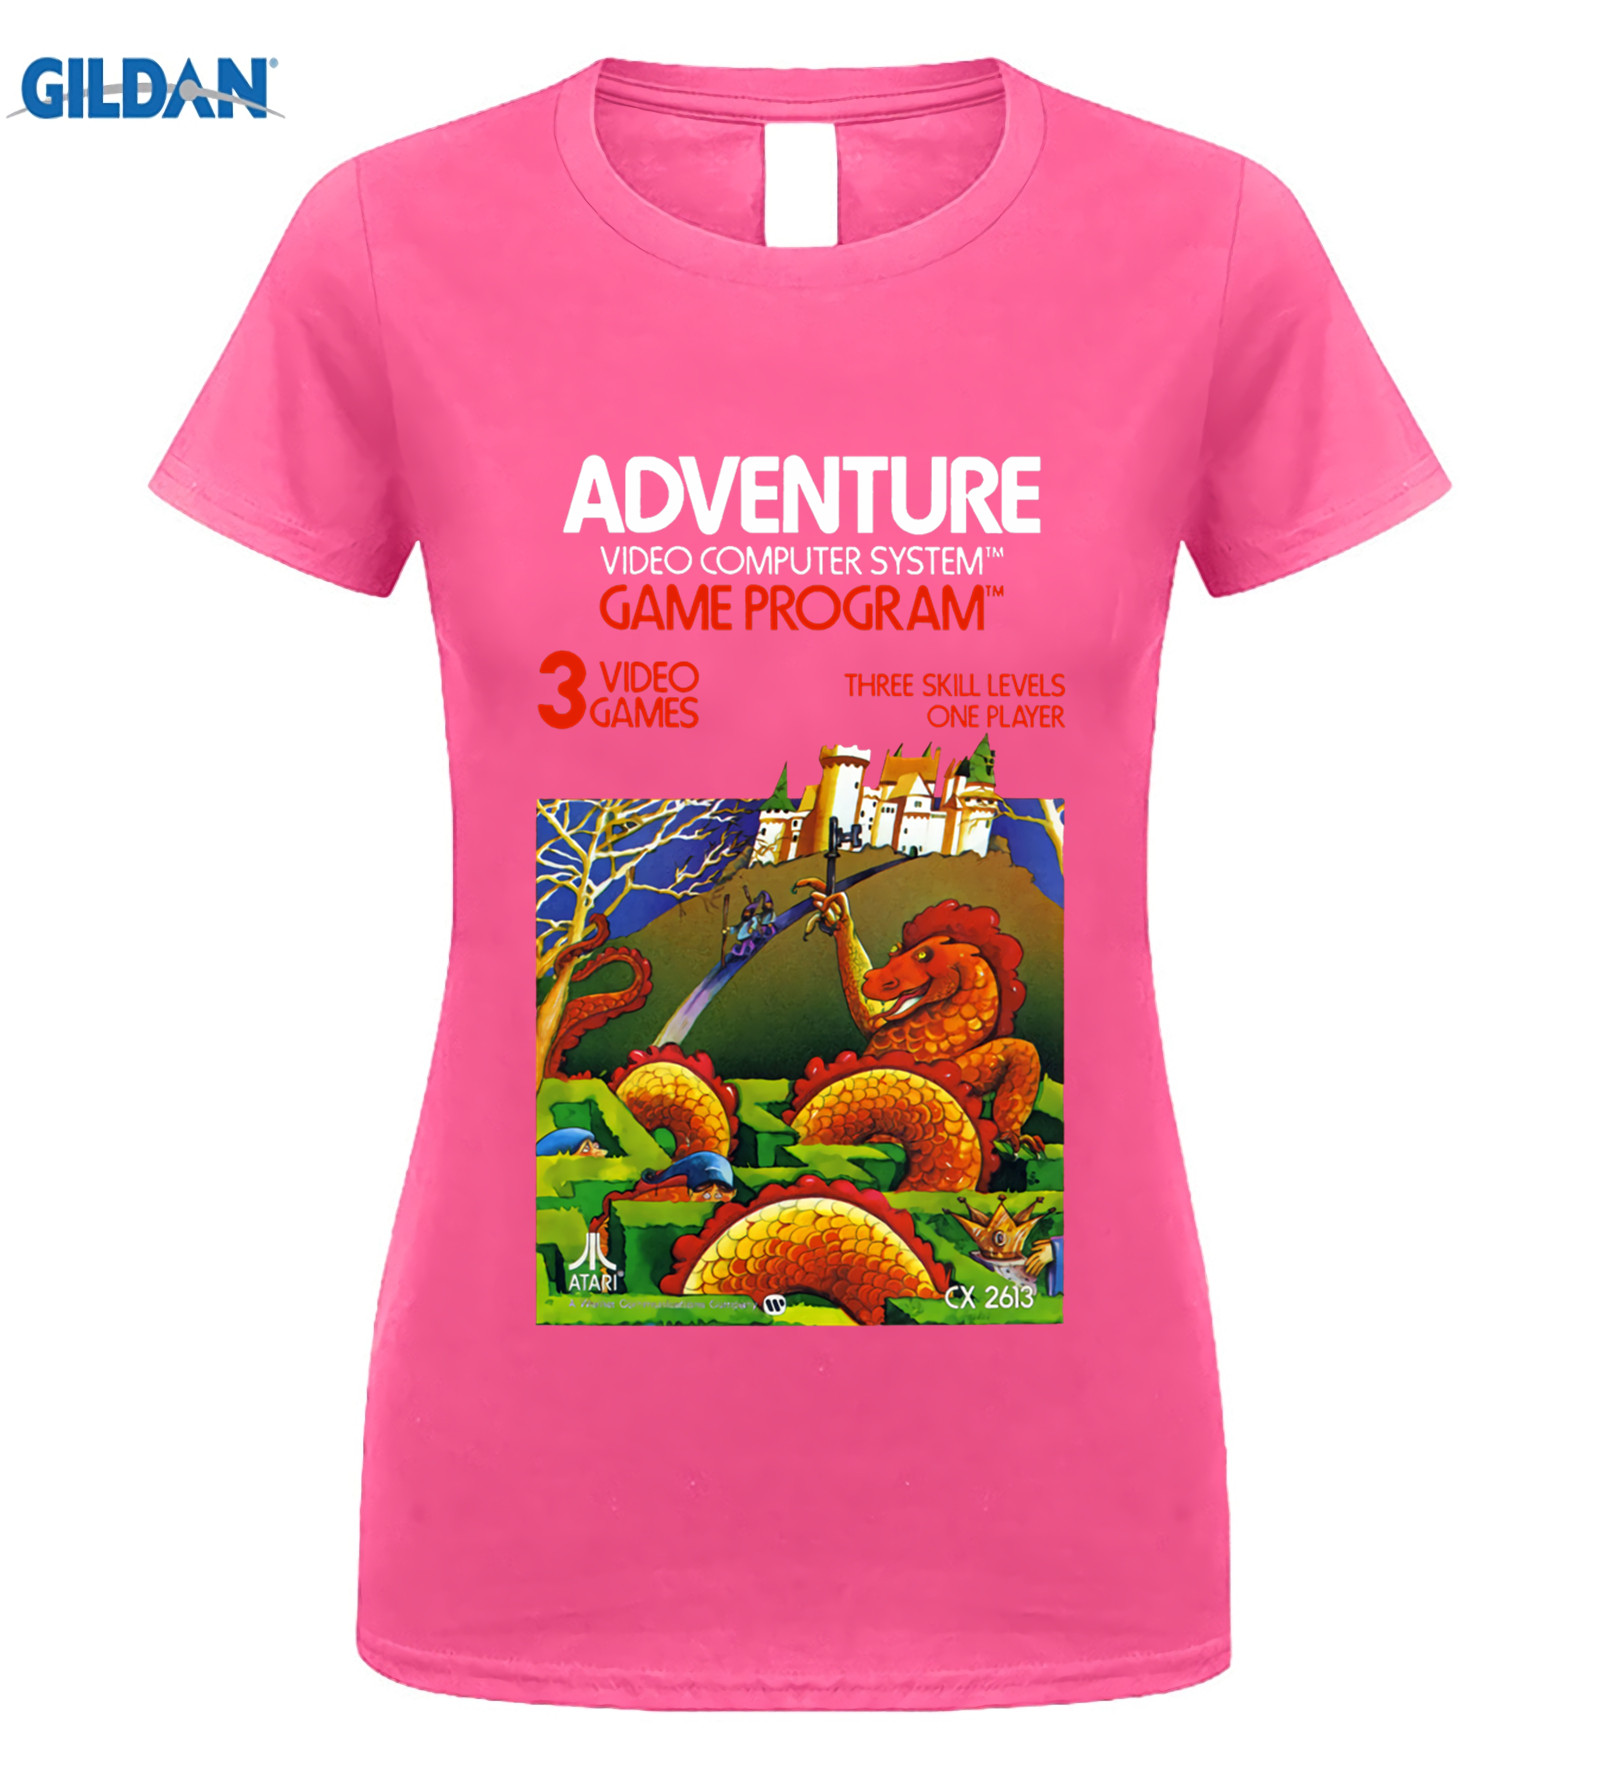 US $9 47 21% OFF|GILDAN Adventure Atari 2600 Retro Vintage Video Game Box  Art T Shirt-in T-Shirts from Men's Clothing on Aliexpress com | Alibaba